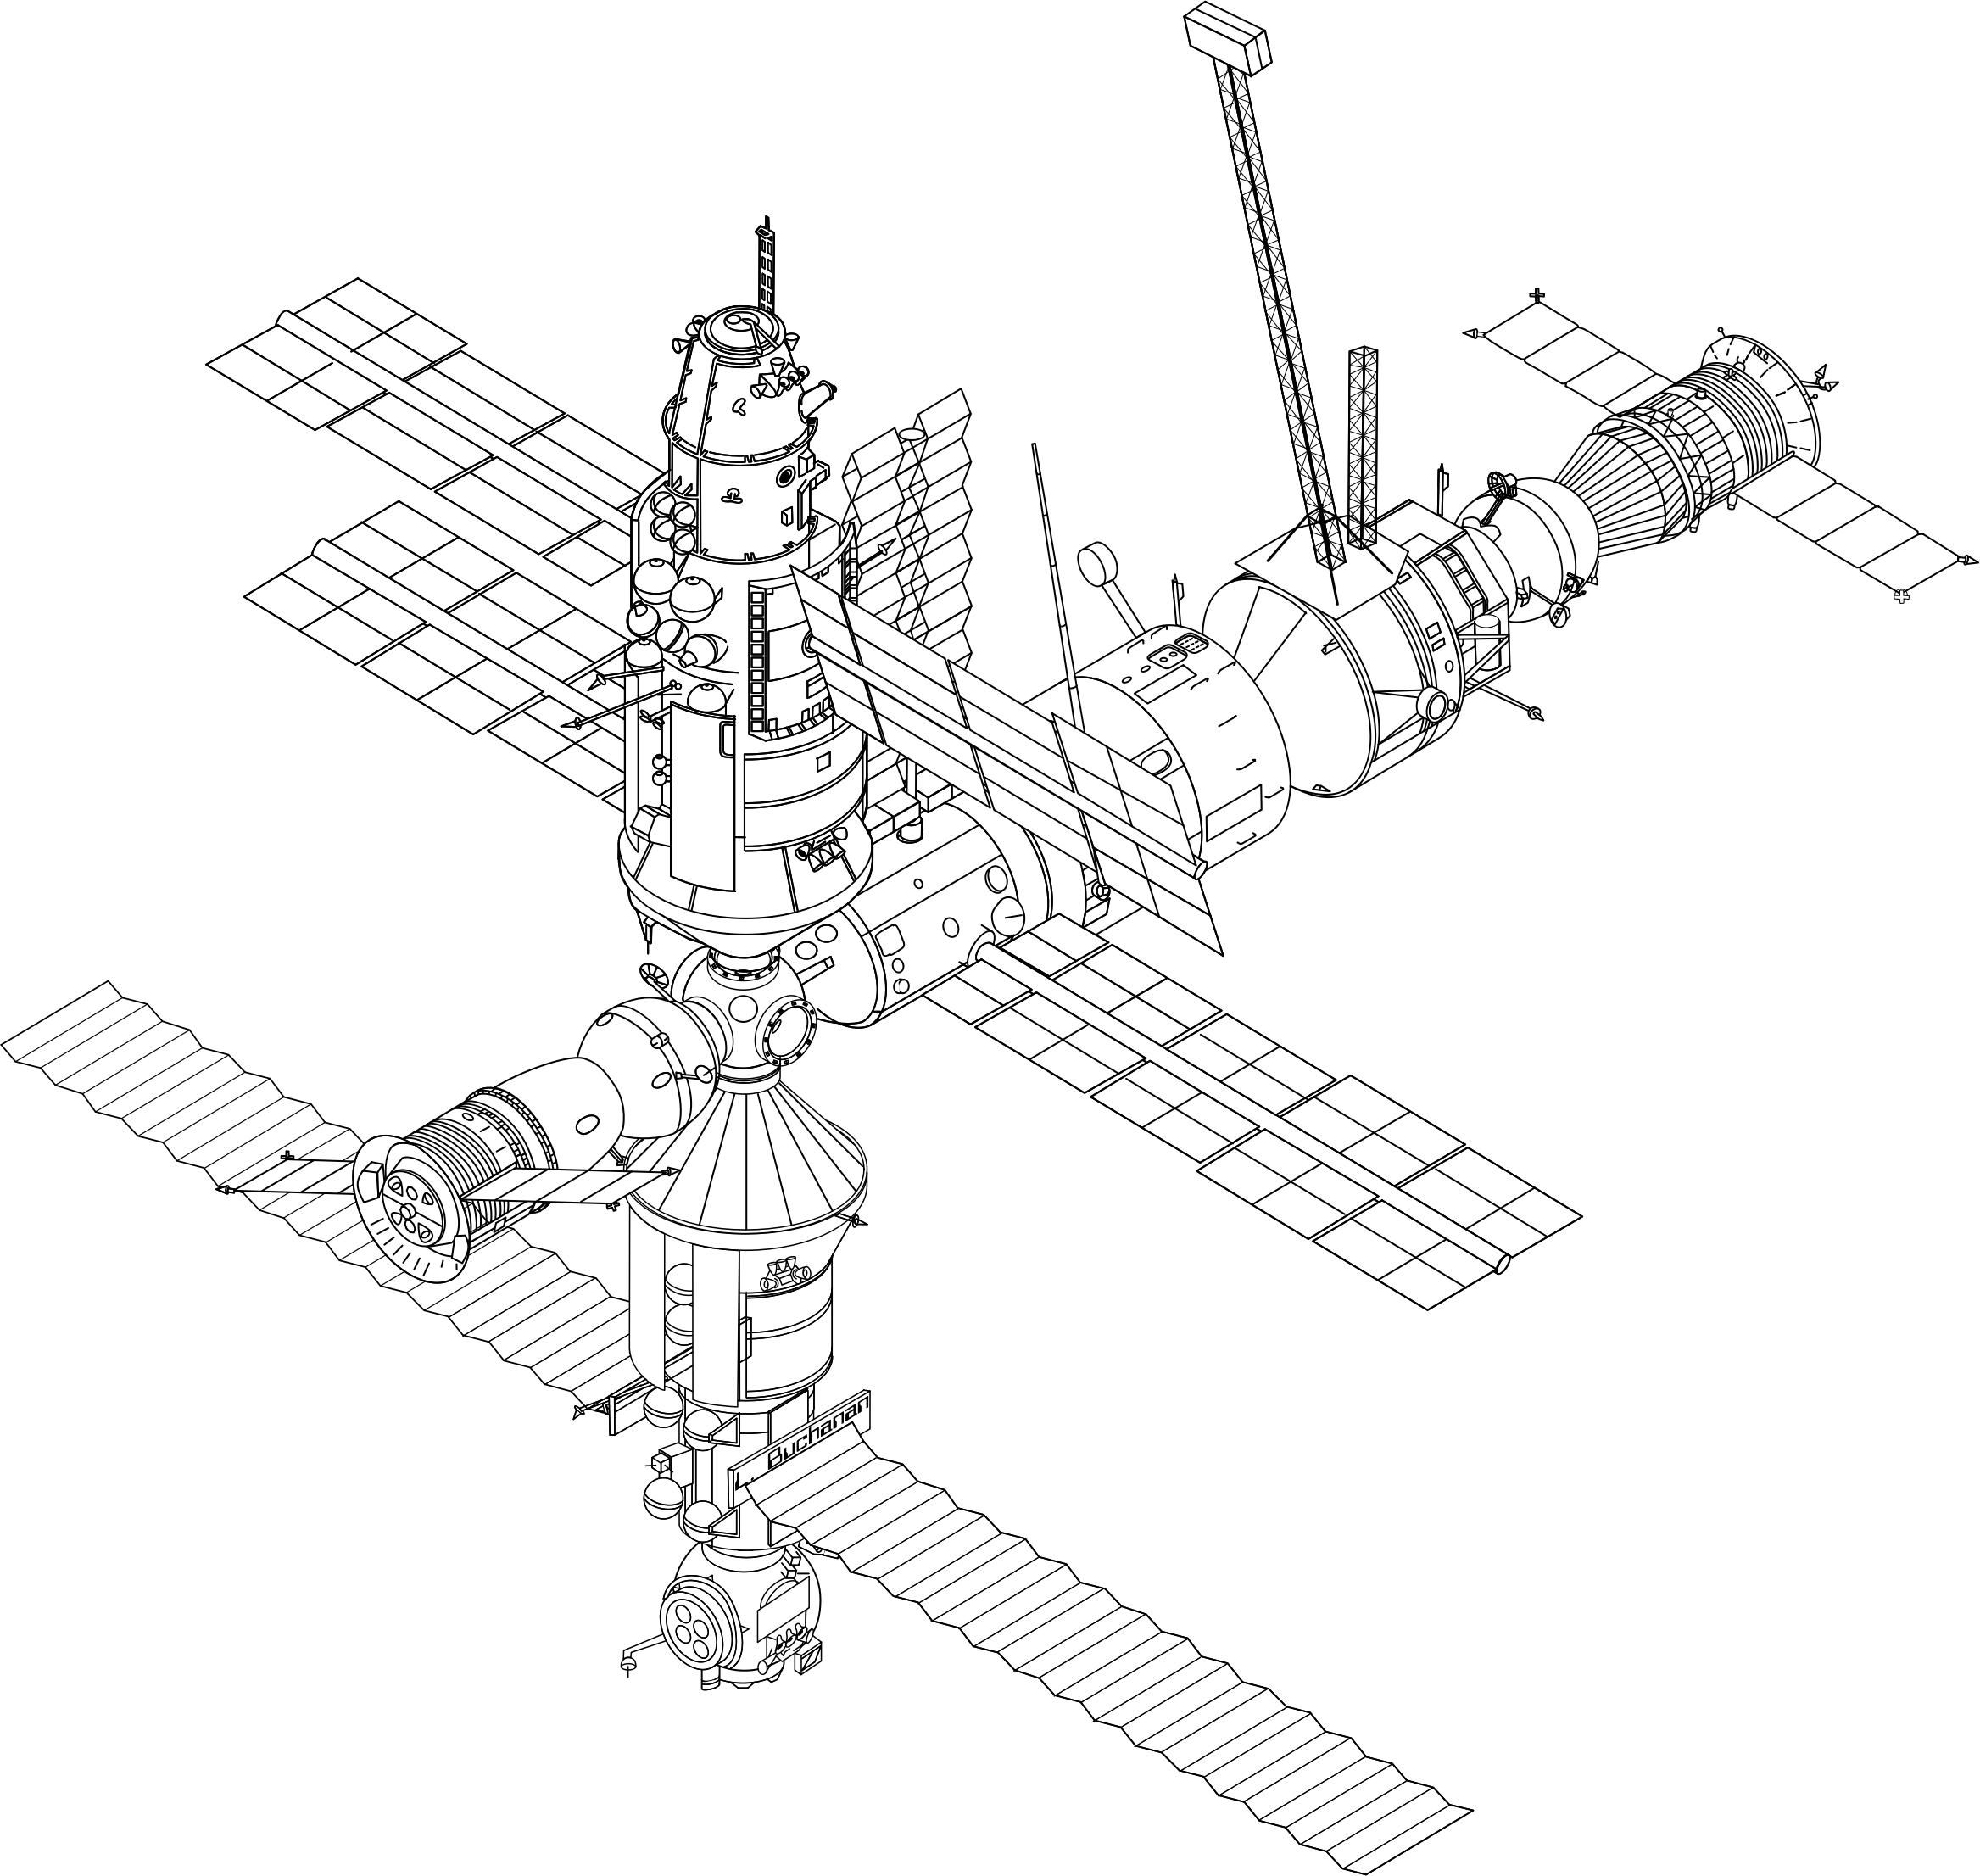 space station clipart - photo #13